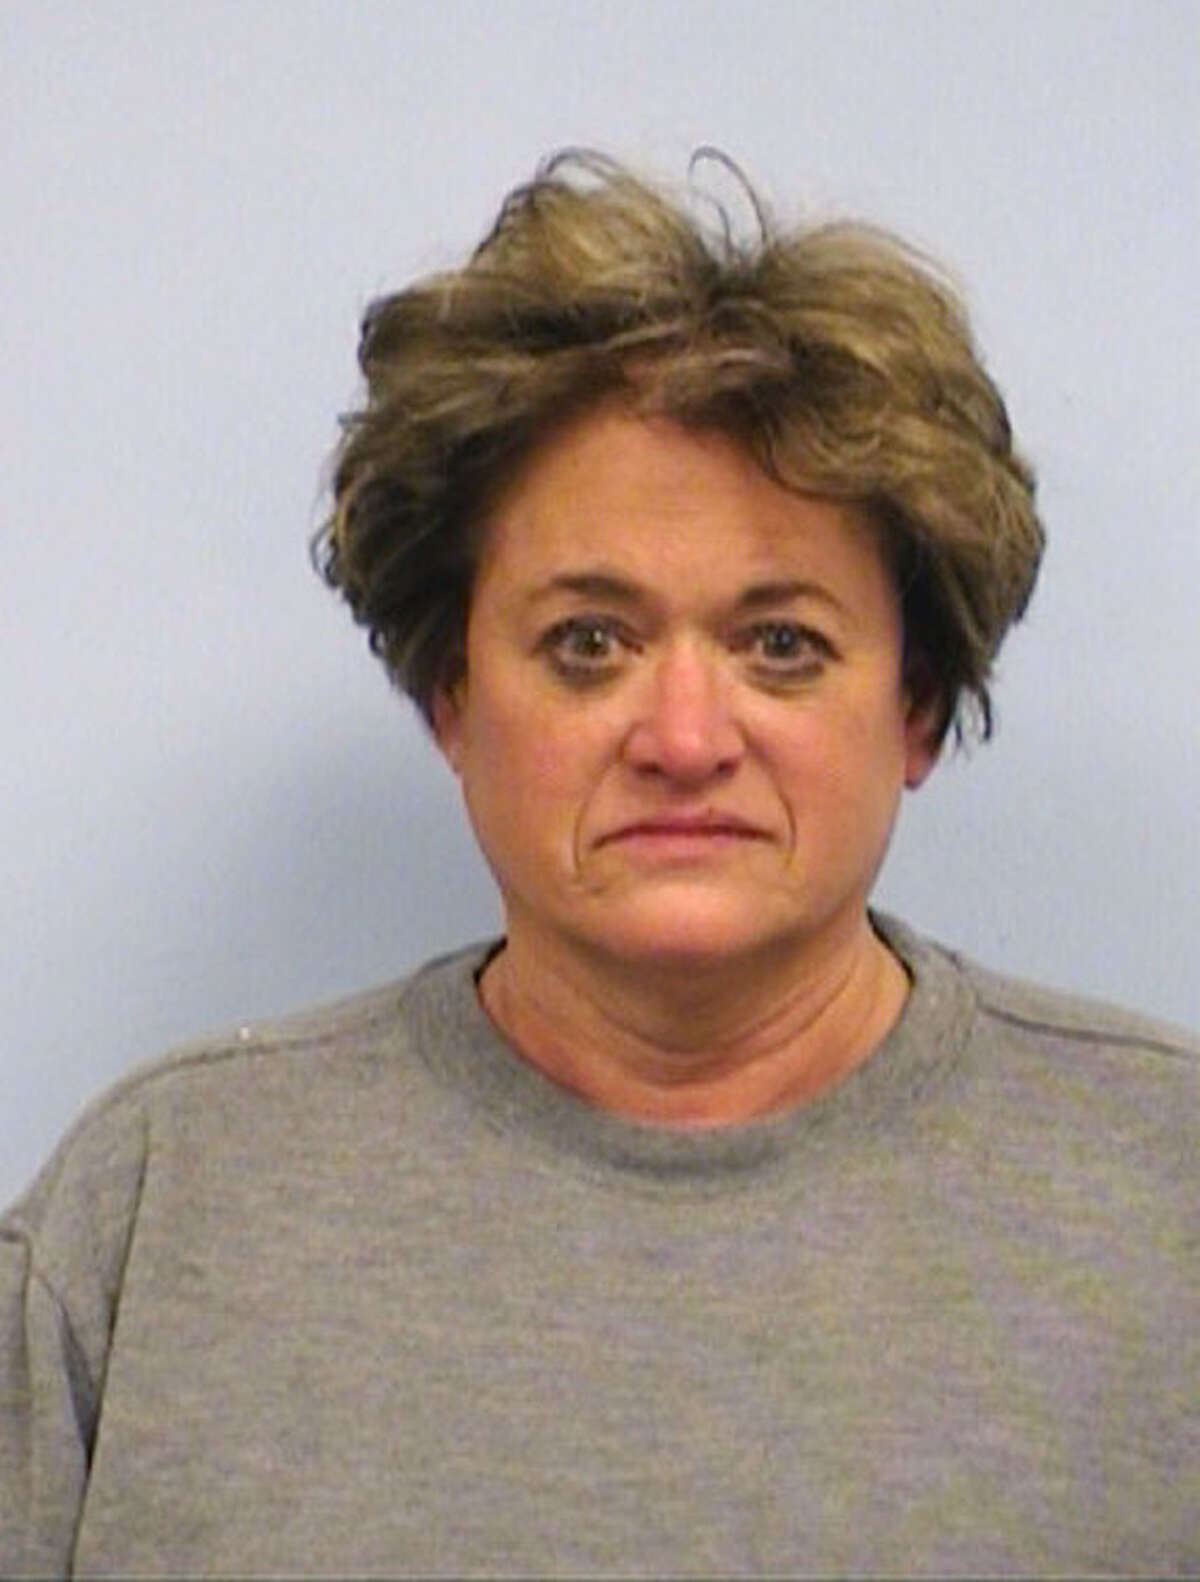 This booking photo provided by The Travis County Sheriff's Office shows Rosemary Lehmberg. Lehmberg, the Travis County district attorney, on Saturday April 13, 2013, faced a drunken driving charge after a 911 caller alerted authorities to a vehicle weaving and crossing into oncoming traffic. The Austin American-Statesman reported Lehmberg was booked into the county jail early Saturday after being arrested for driving while intoxicated. (AP Photo/Travis County Sheriff's Office)